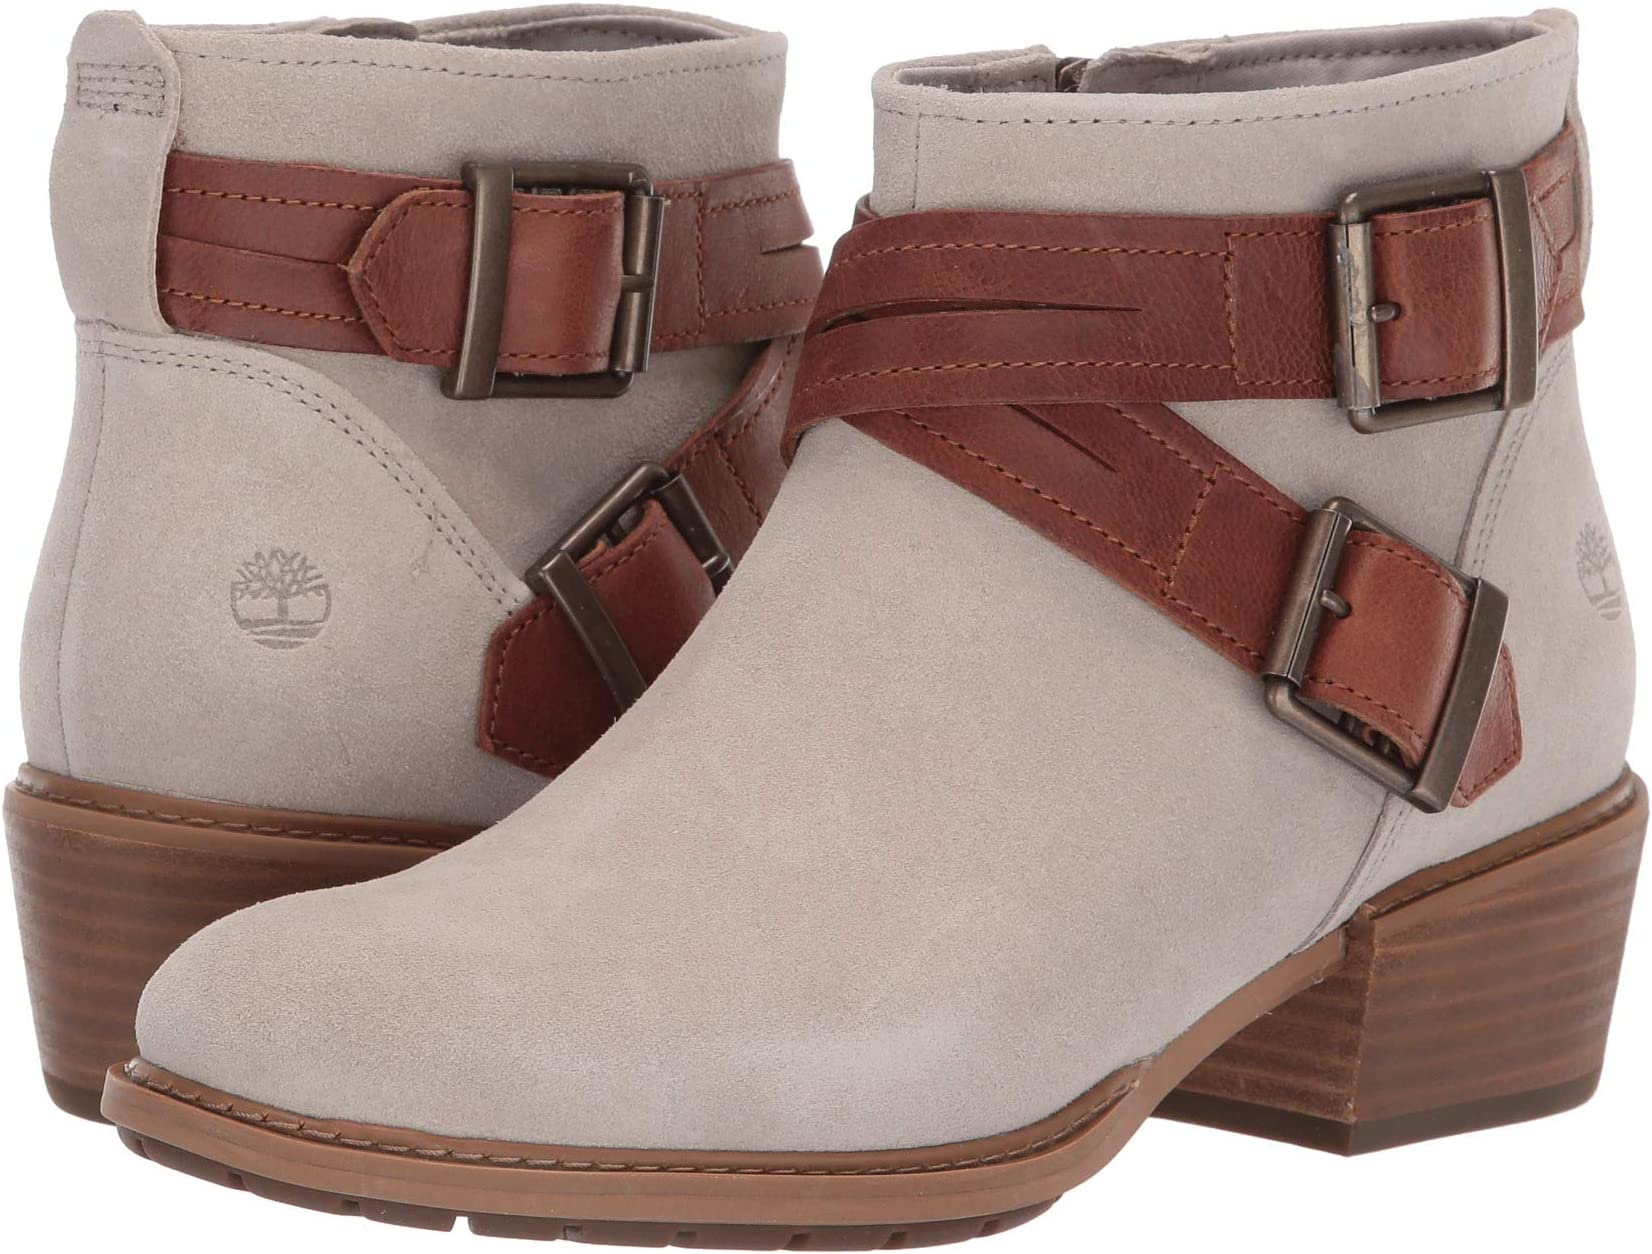 34e4b627449 Timberland Boots & Shoes | Shipped FREE at Zappos | Zappos.com